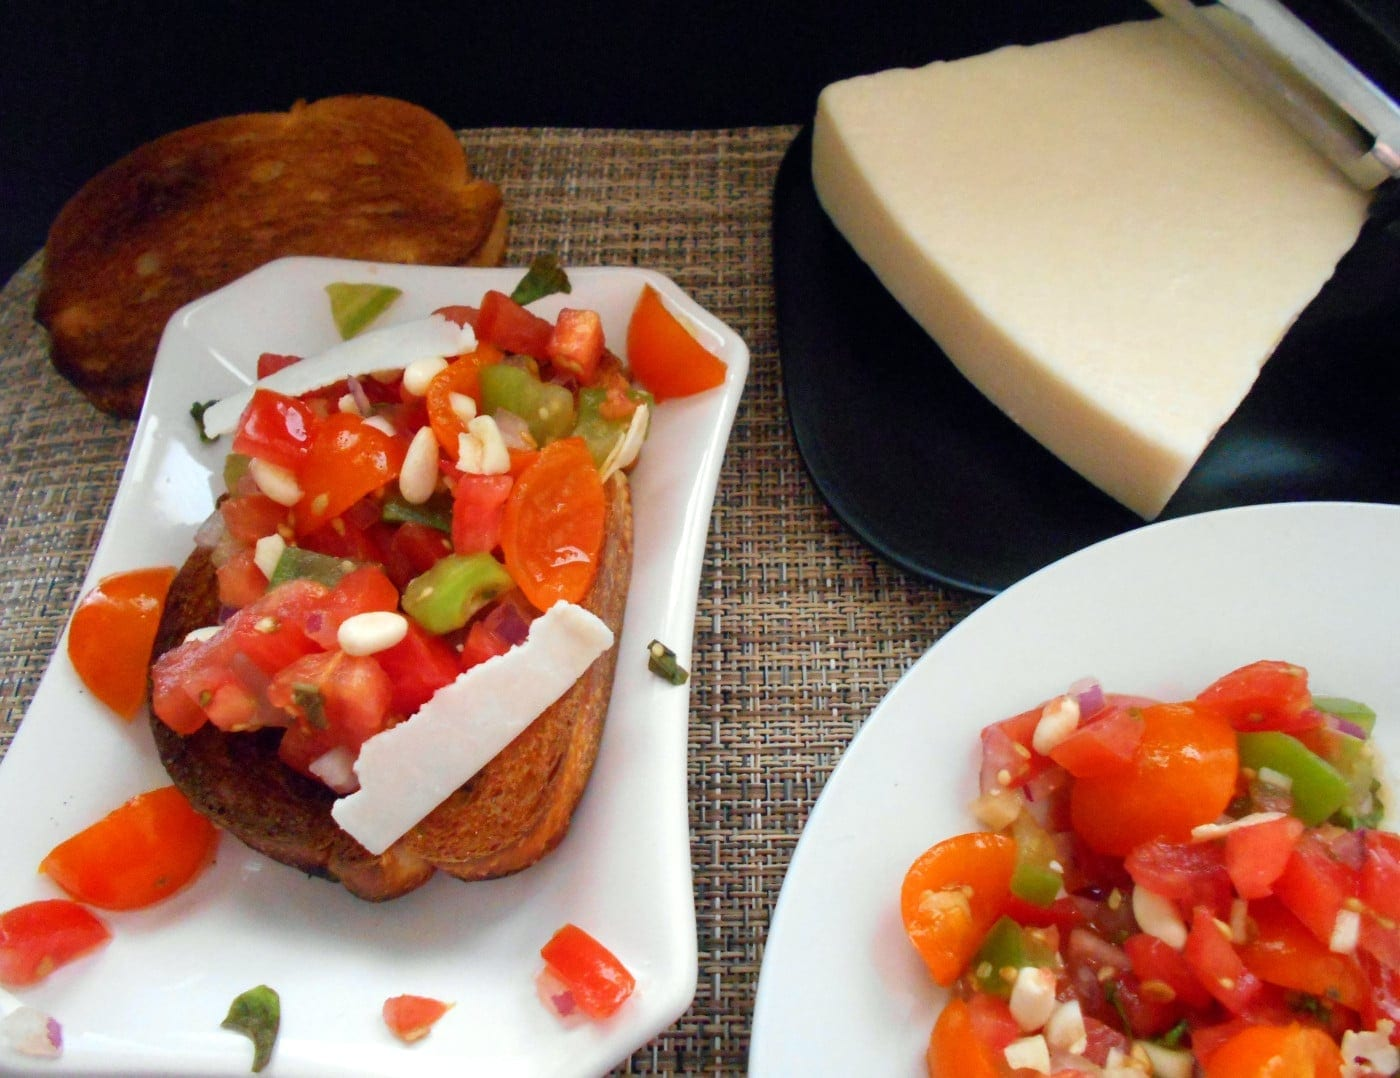 Side view of the Bruschetta on bread